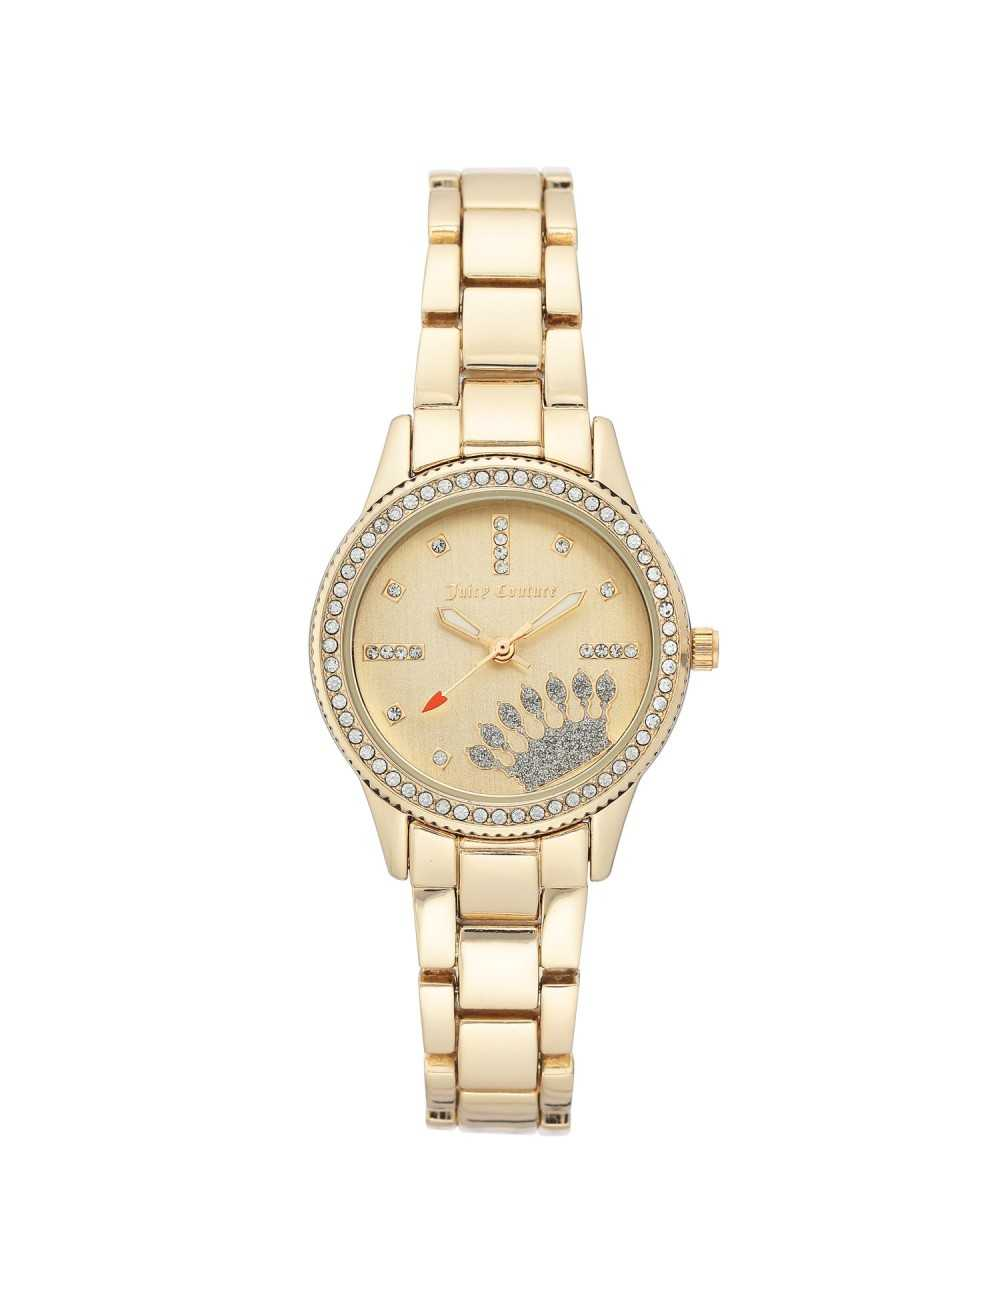 Juicy Couture Watch JC/1110CHGB